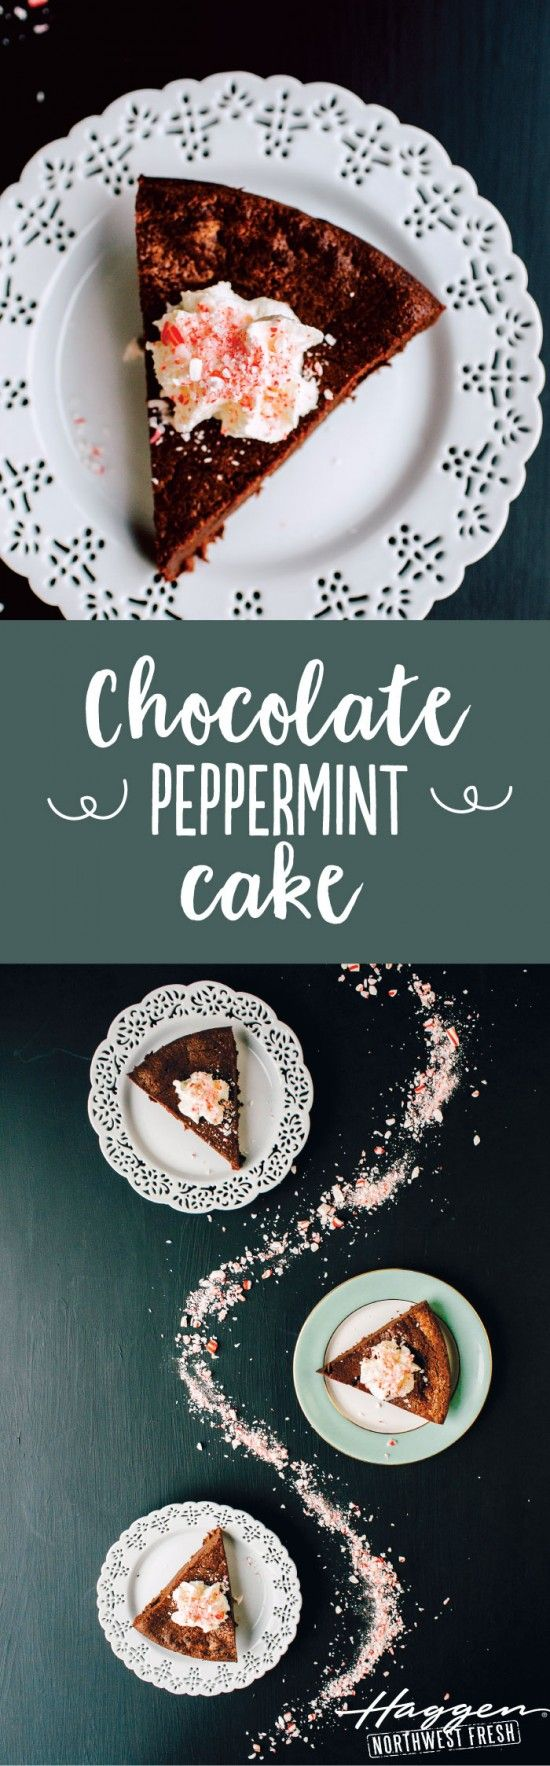 Baby, it's cold outside but the desserts are plentiful with this Chocolate Peppermint Cake recipe.